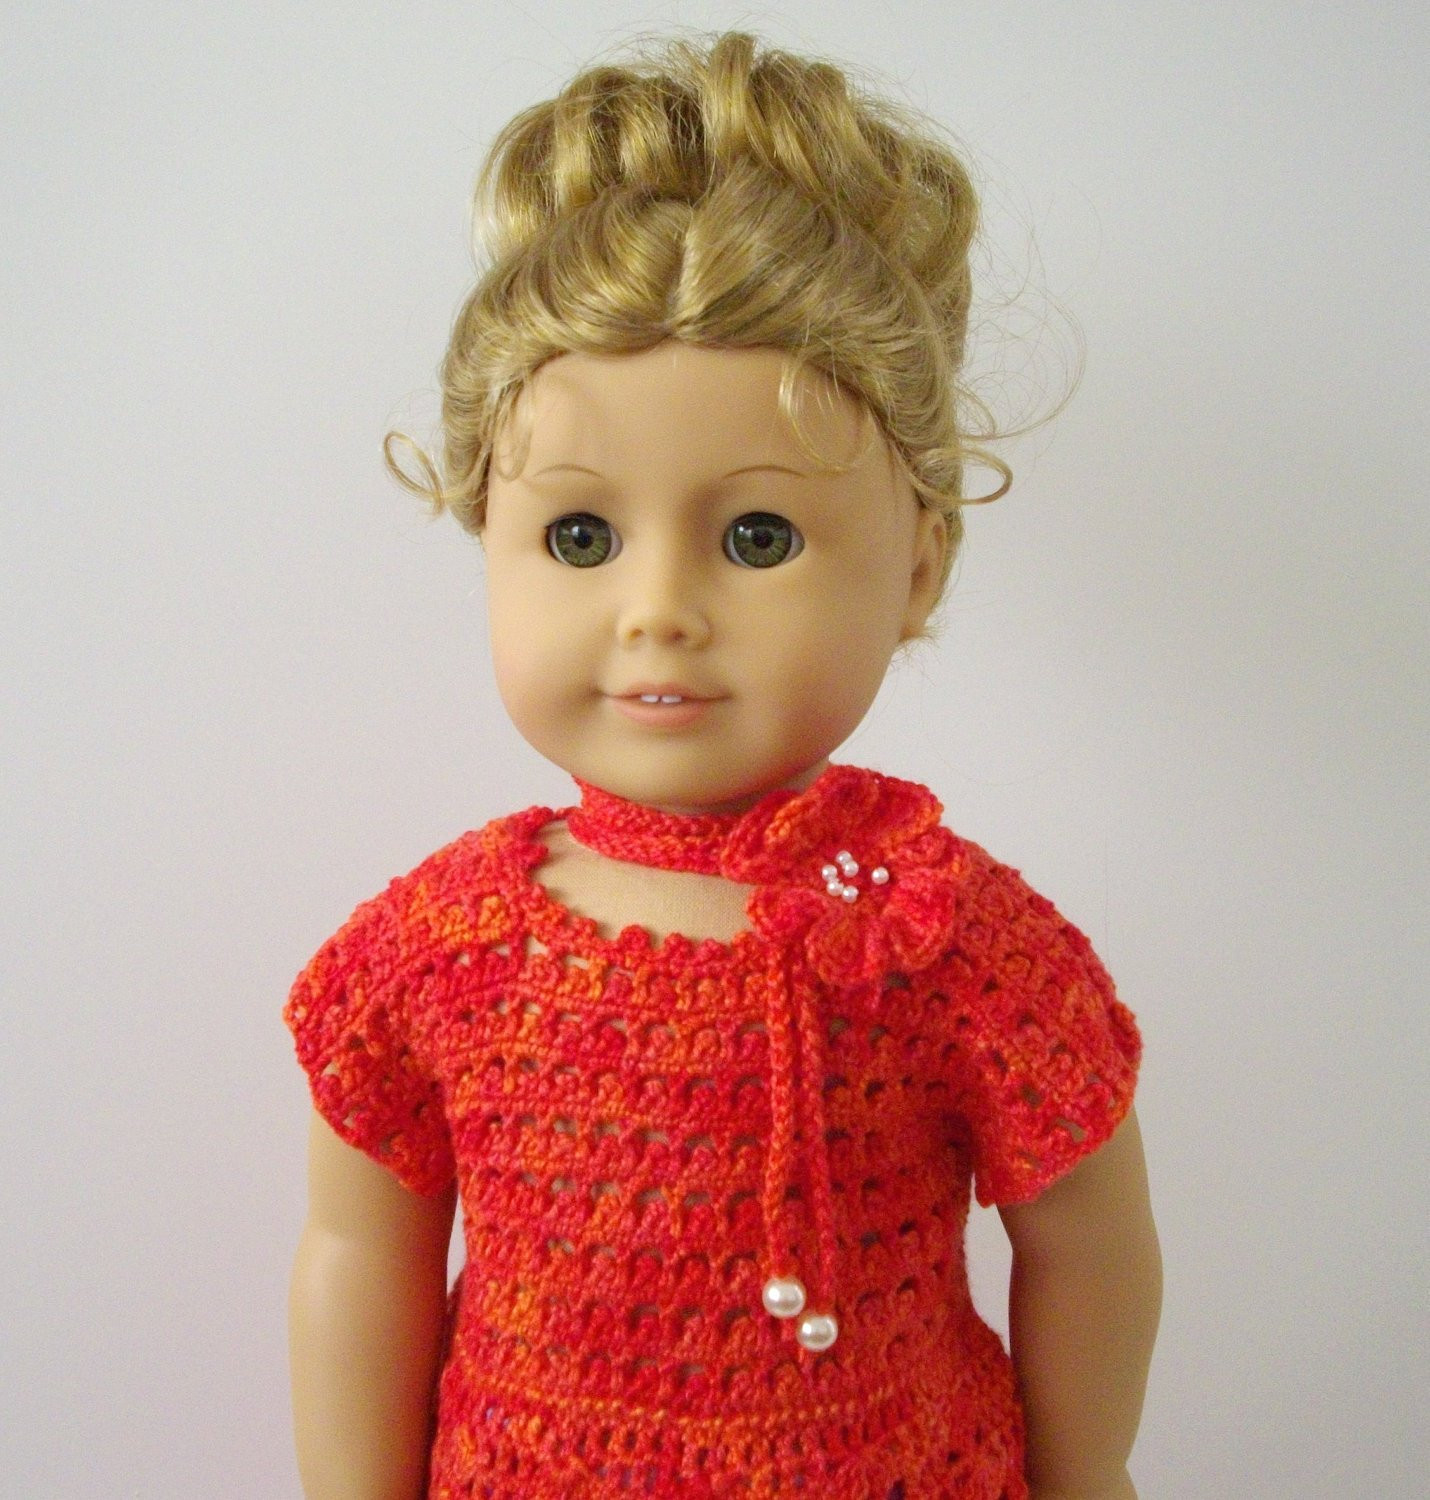 Free Crochet Patterns for American Girl Doll New Free American Doll Pattern Crochet Crochet and Knitting Of Contemporary 40 Pictures Free Crochet Patterns for American Girl Doll